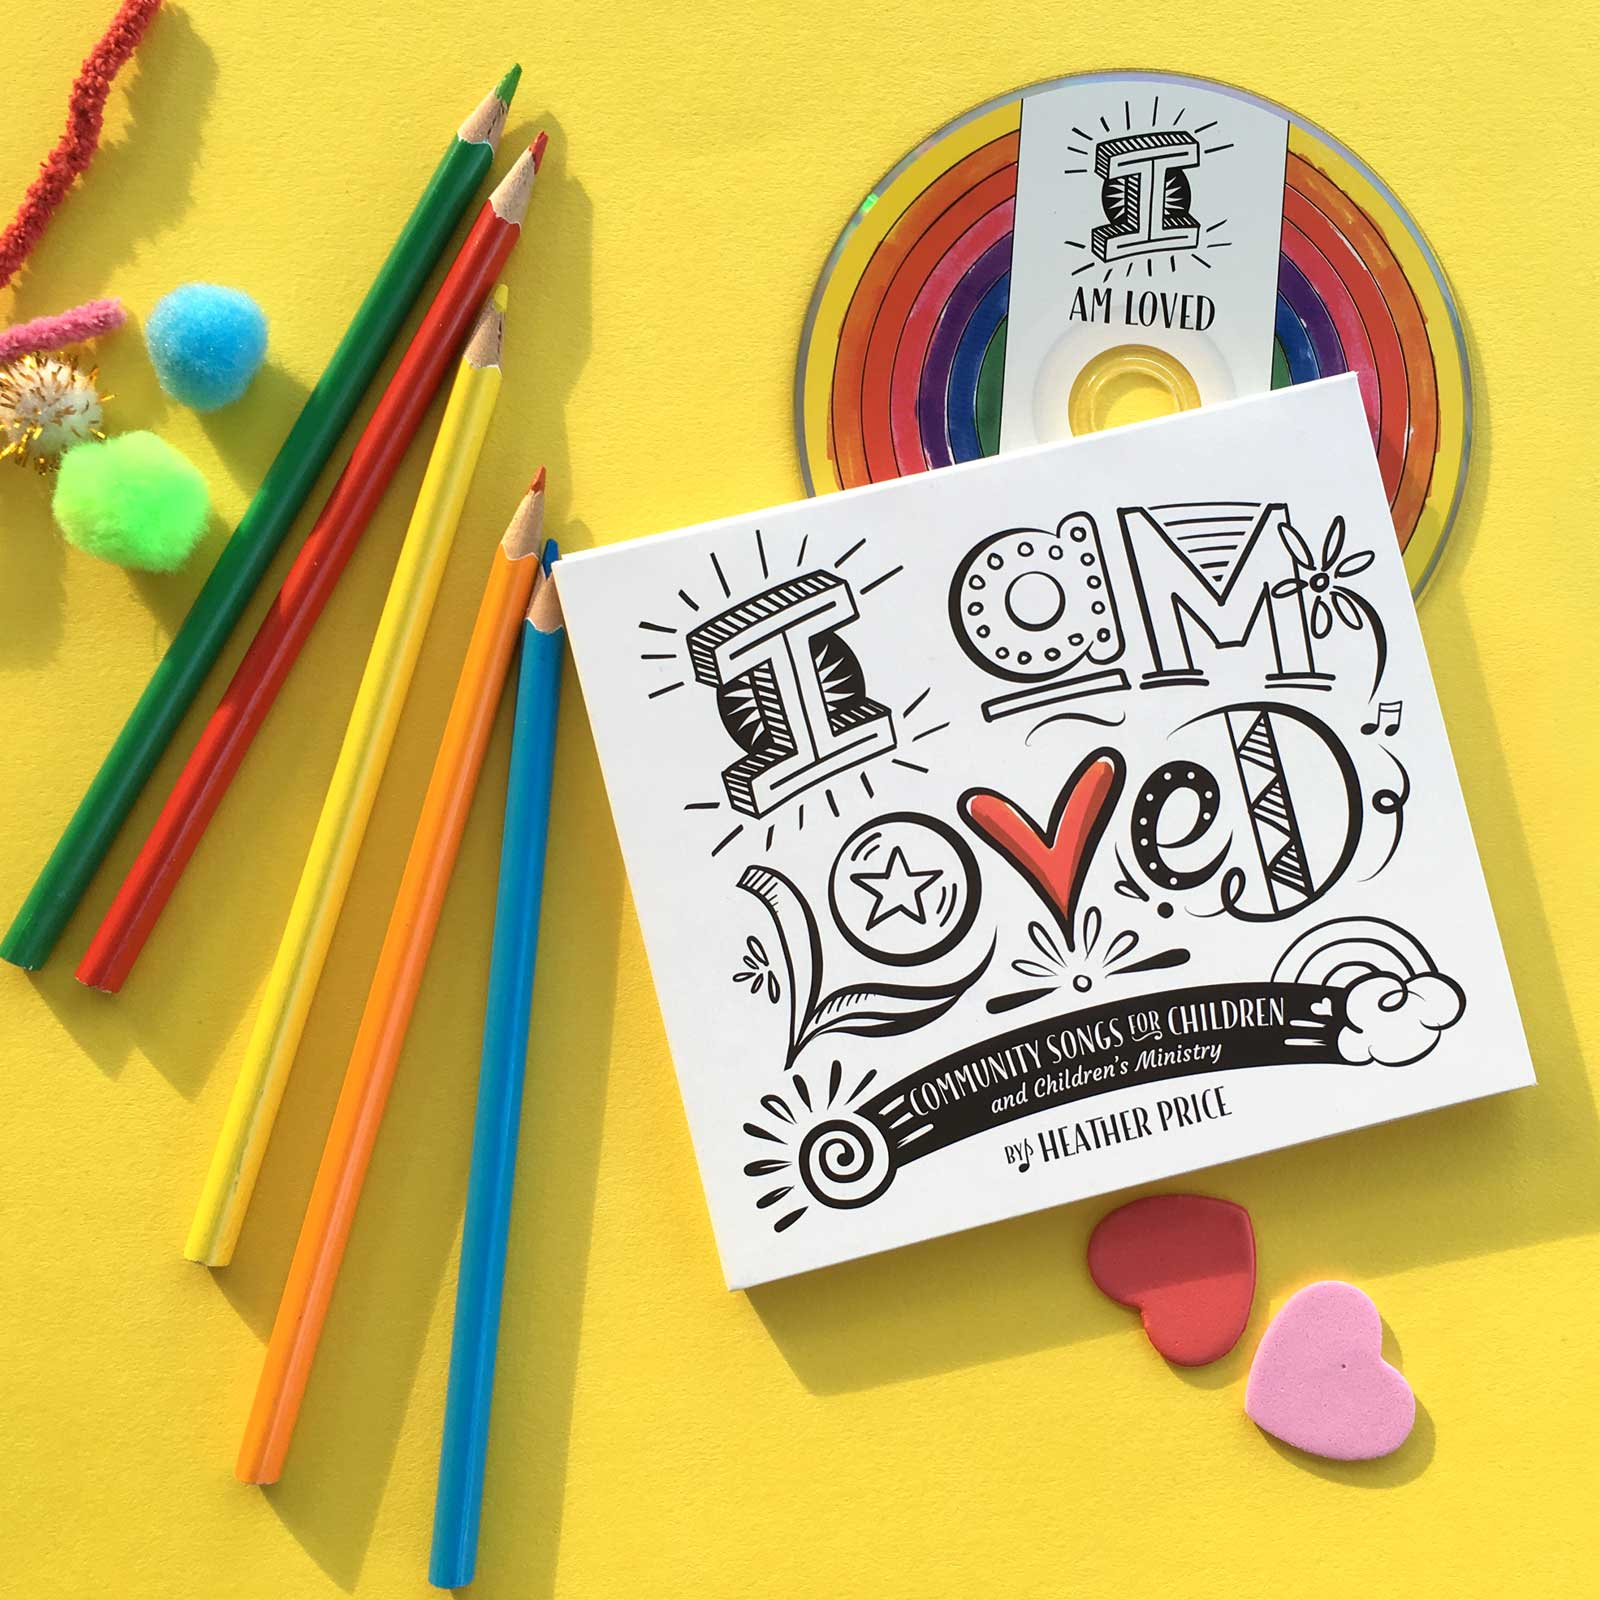 I am Loved album with pencils and craft